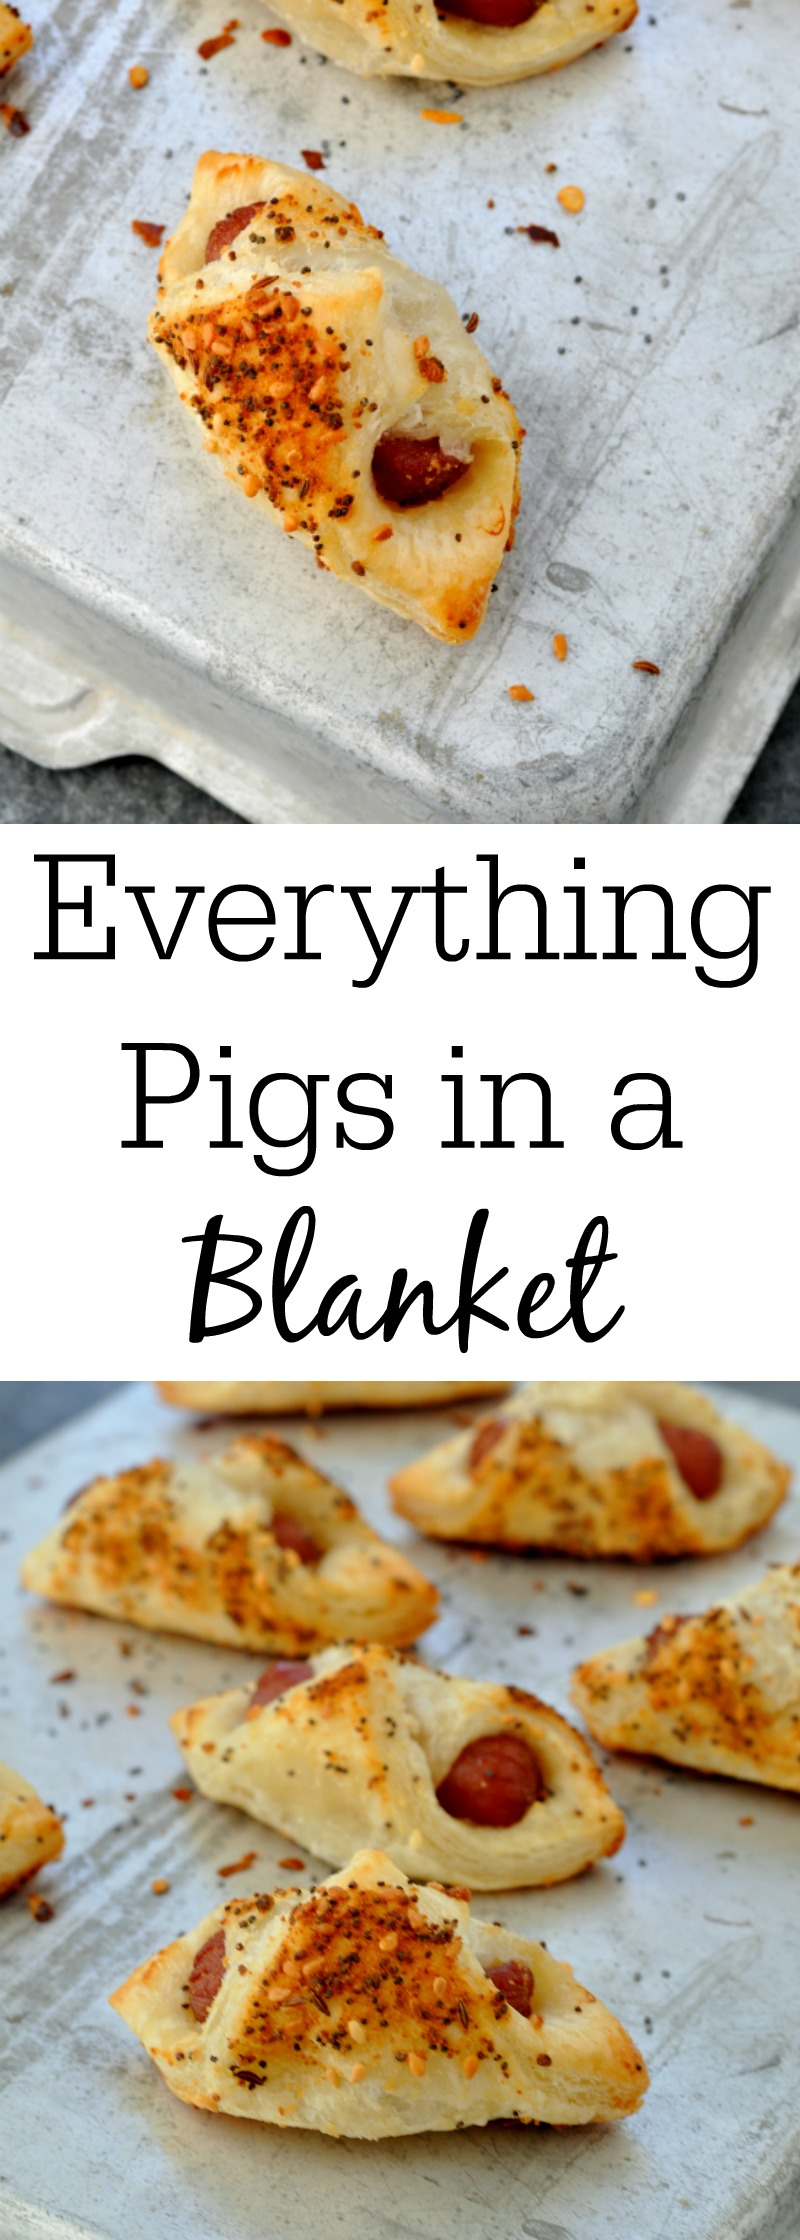 Everything Pigs in a Blanket